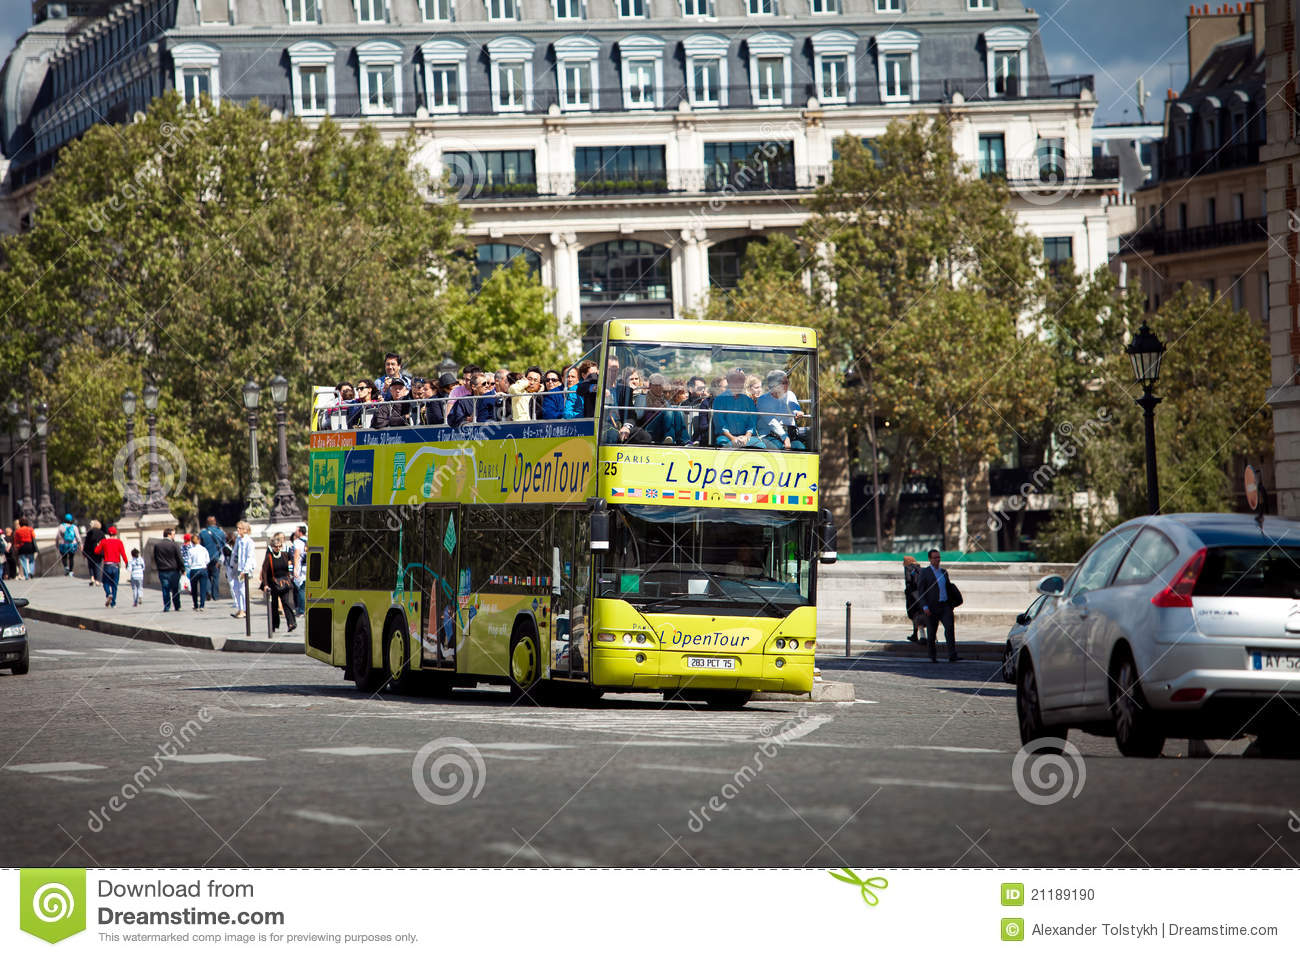 Excursion tourist bus in Paris, France